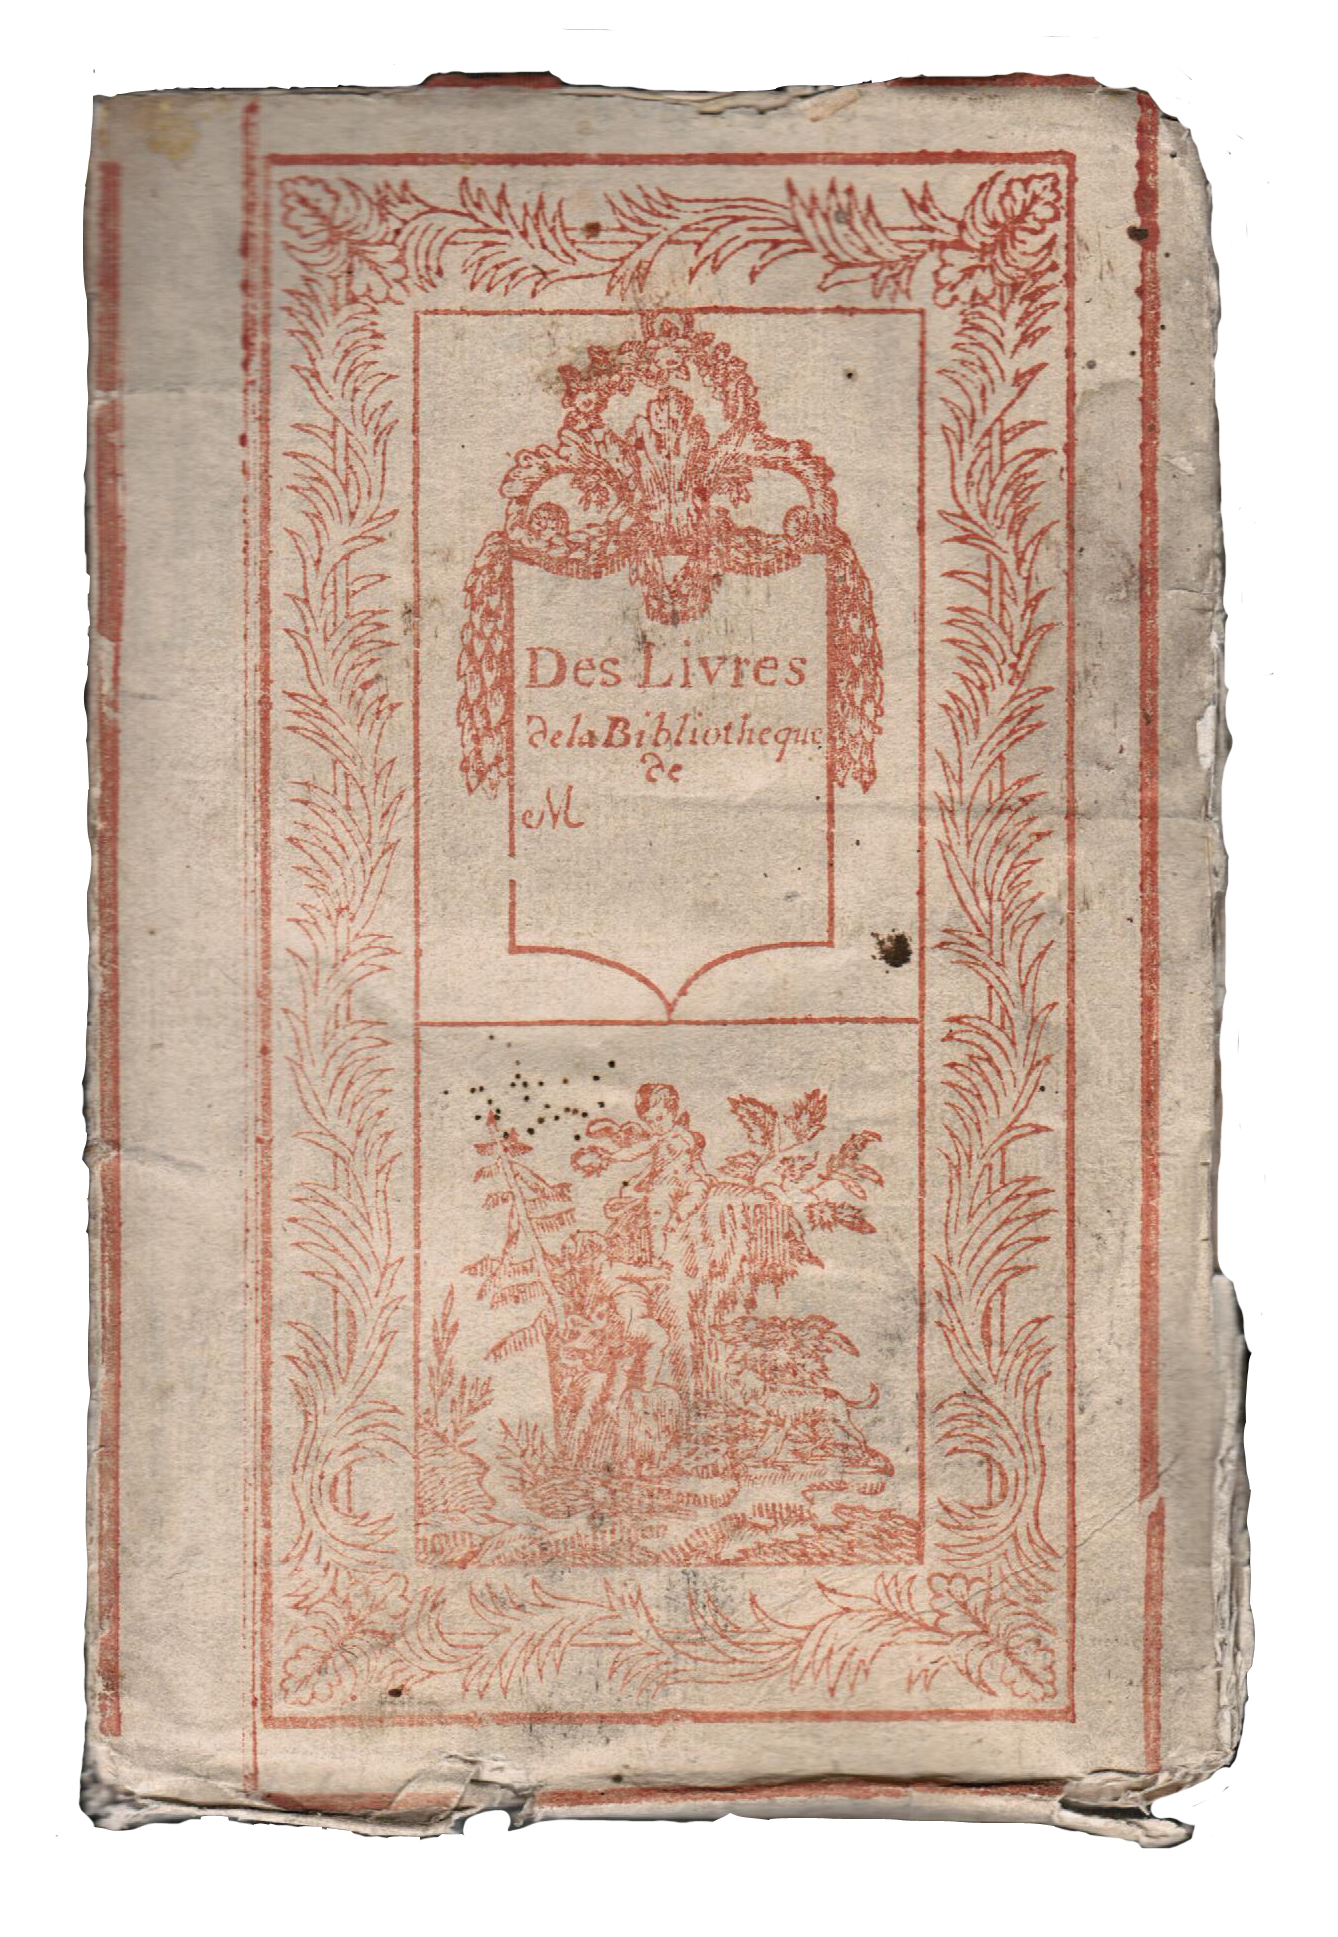 The first 'blank bookplate'?